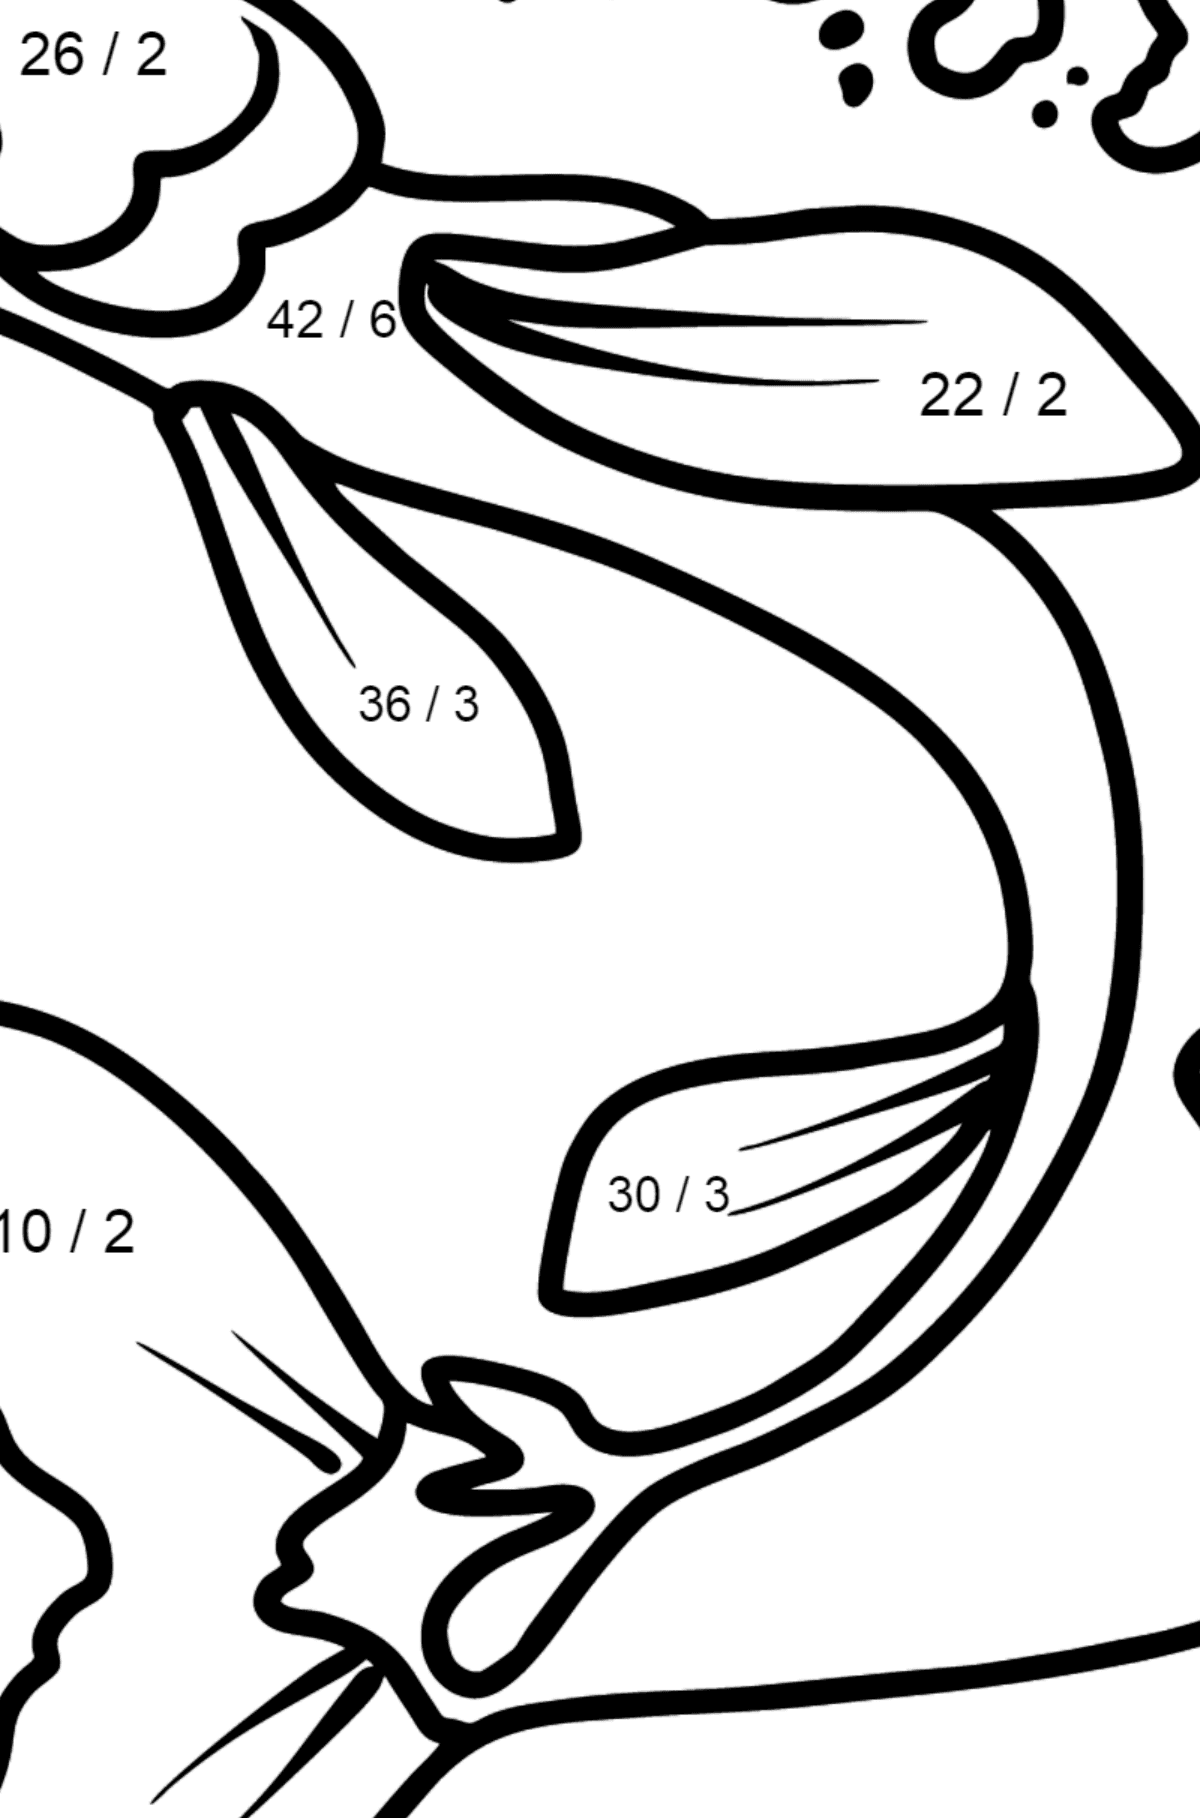 Pike coloring page - Math Coloring - Division for Kids